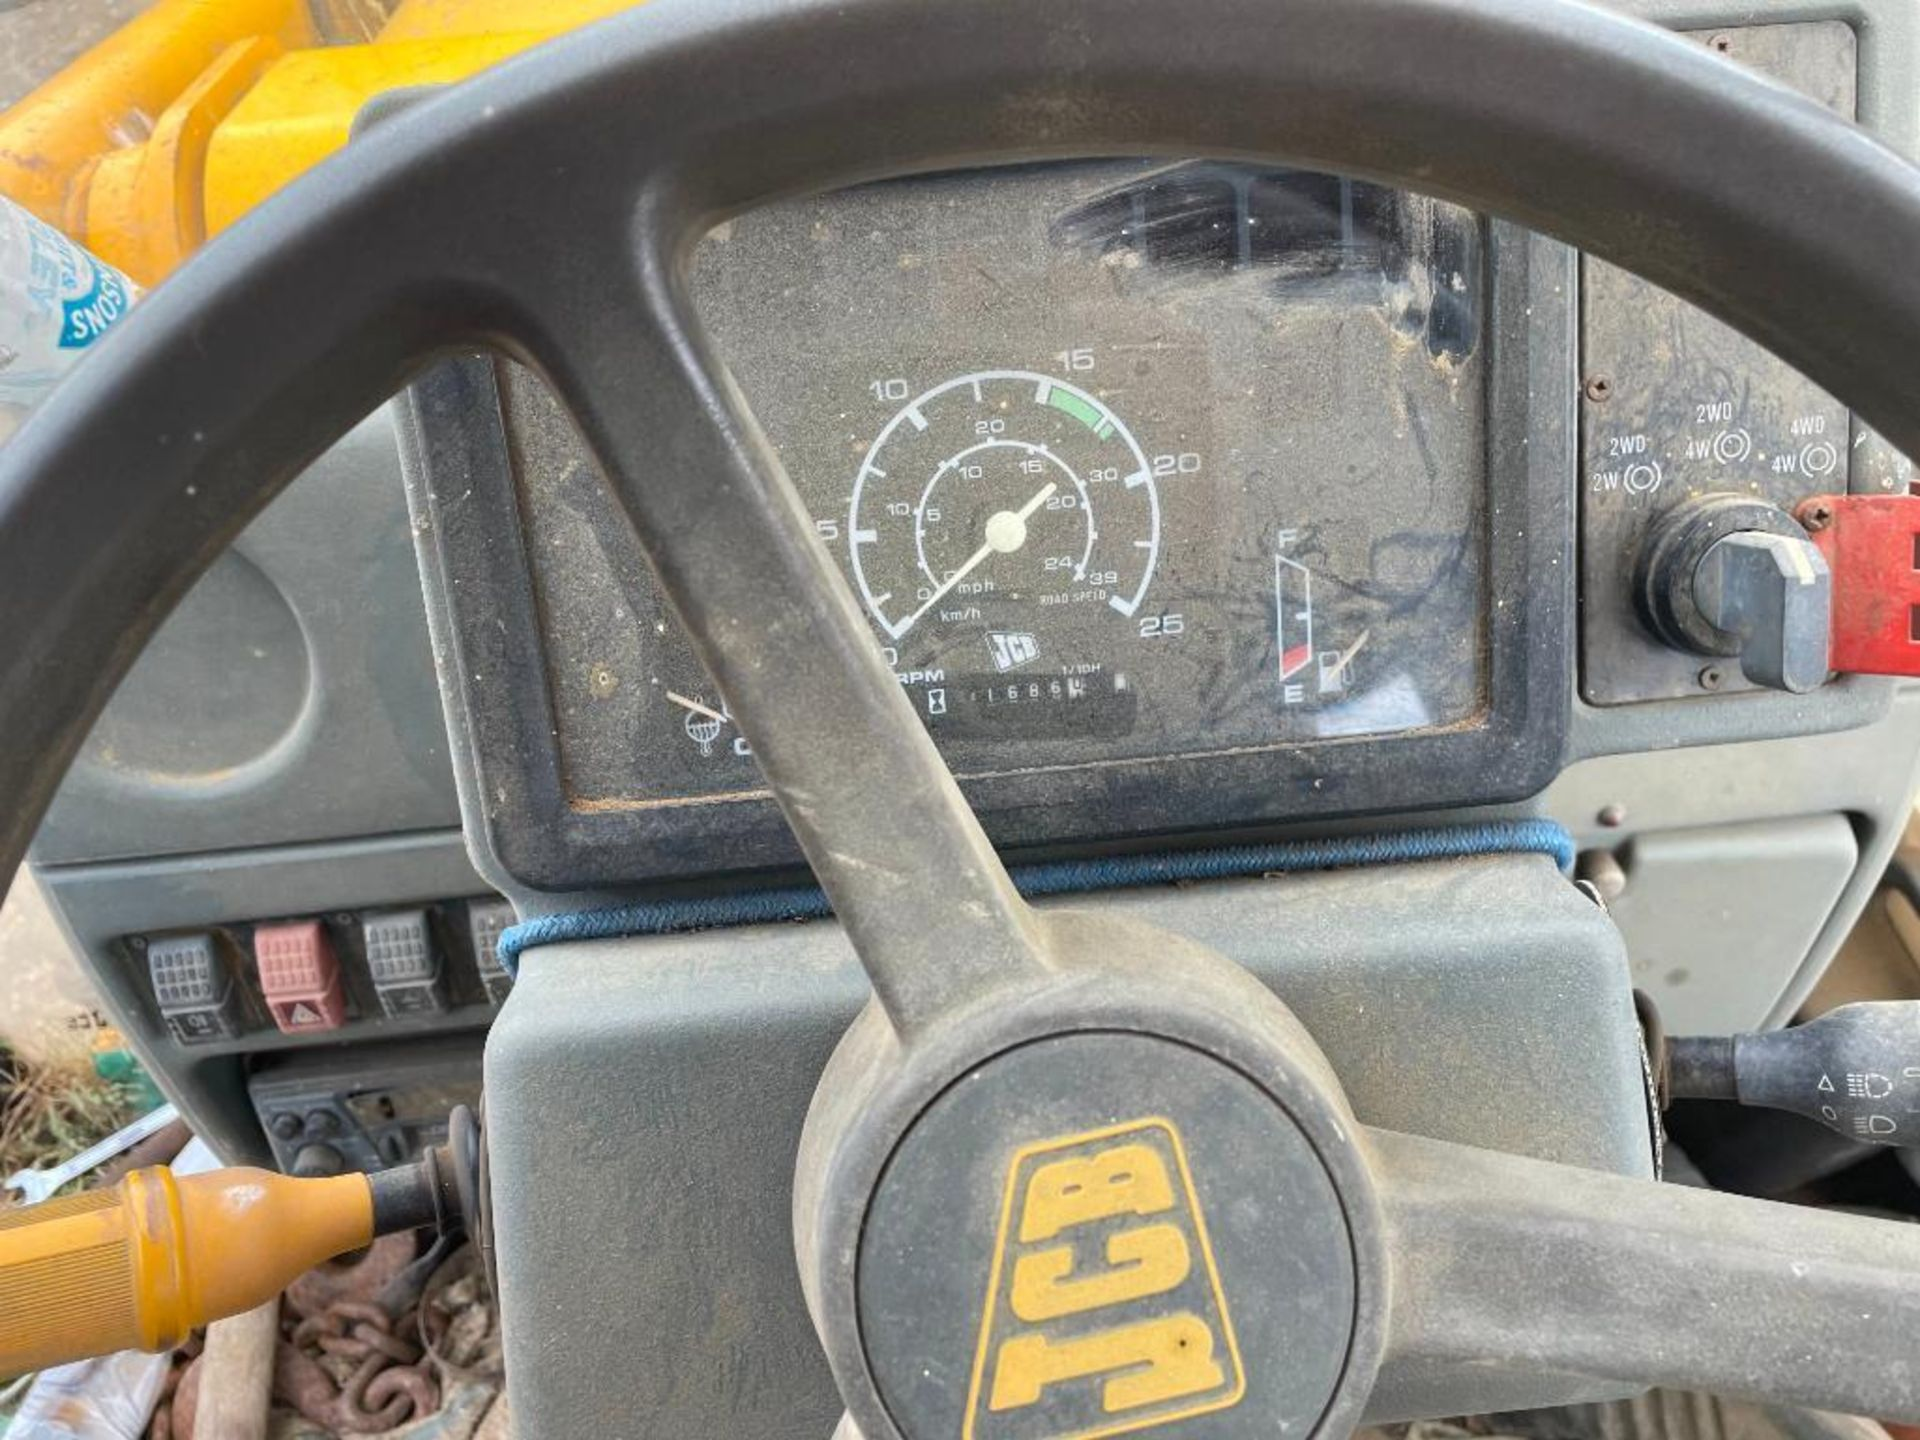 1993 JCB 3CX Sitemaster 4wd back hoe loader with 3 in 1 bucket on 10.5/80-18 front and 18.4-26 rear - Image 13 of 14